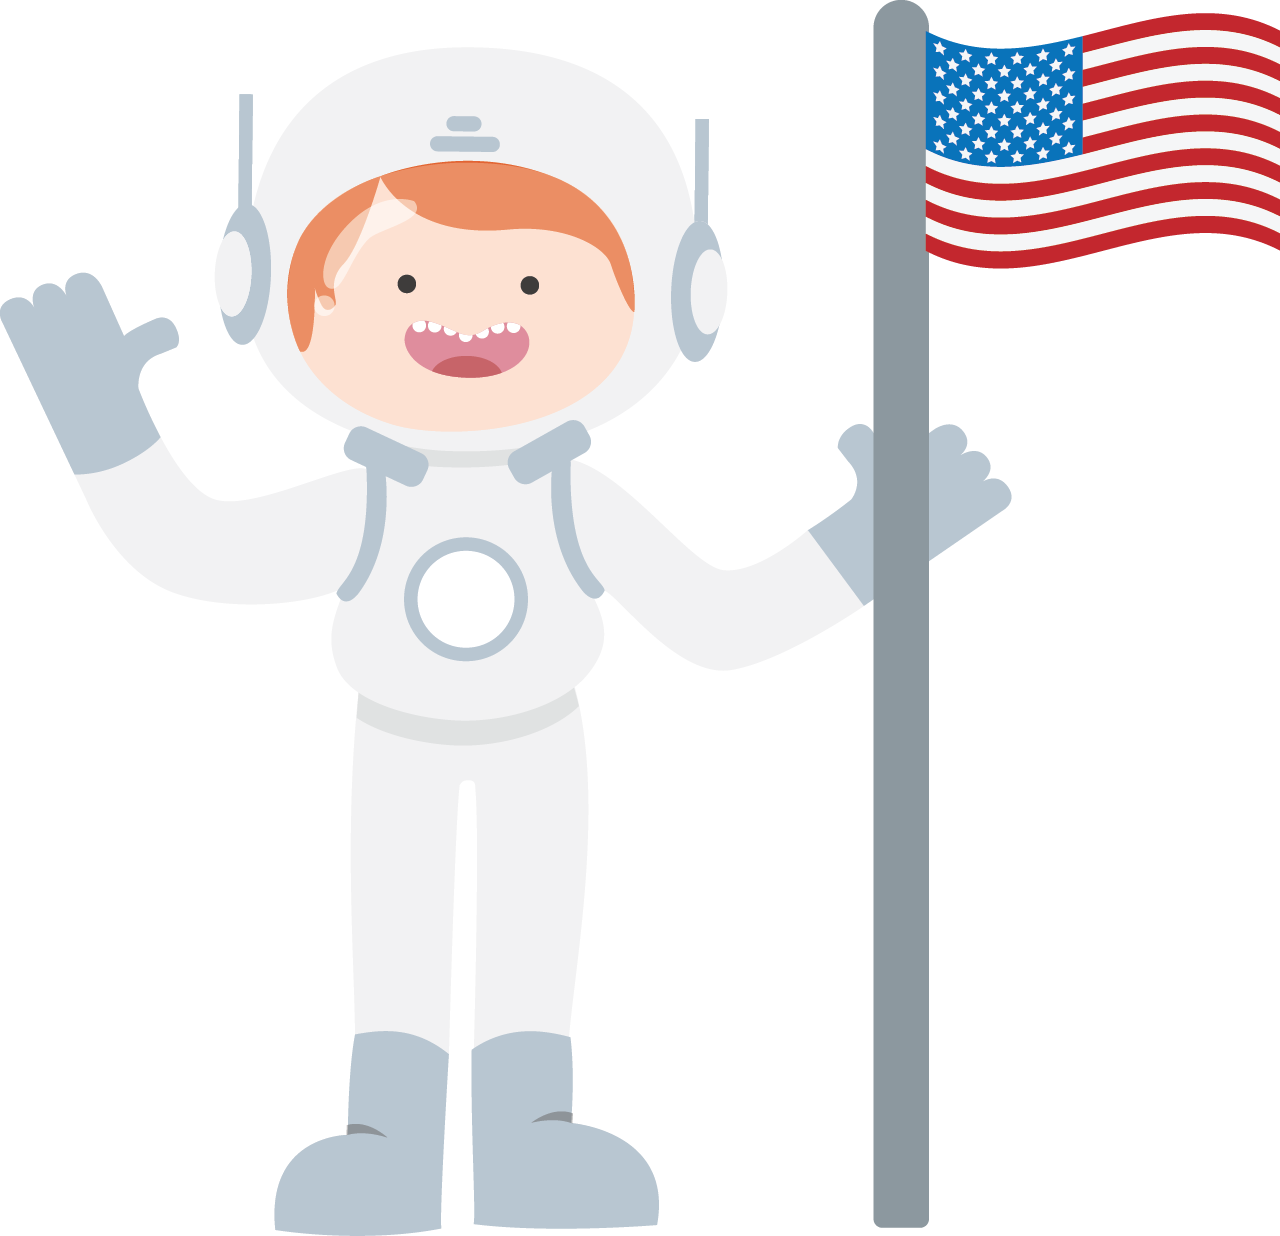 compressed-Astronot-US-Jagoan-Hosting